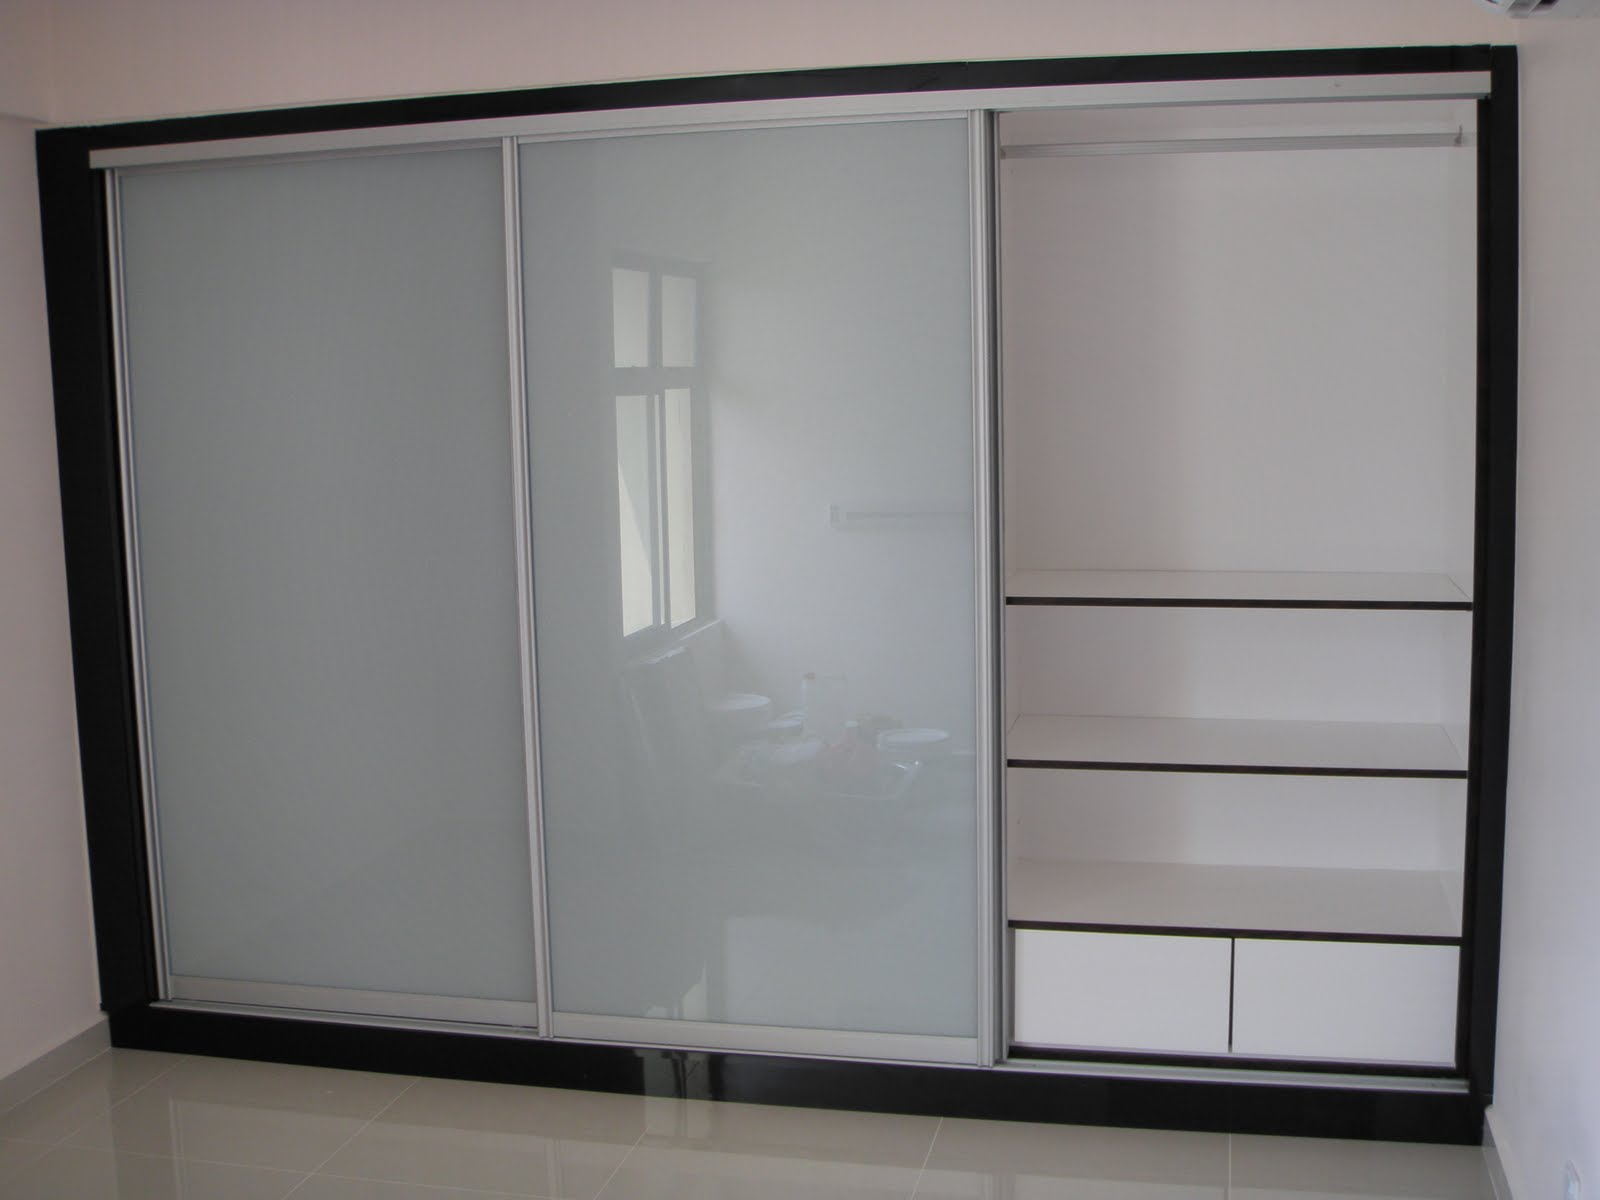 Wardrobe syarikat swee tat my for Designs for bedroom cupboards